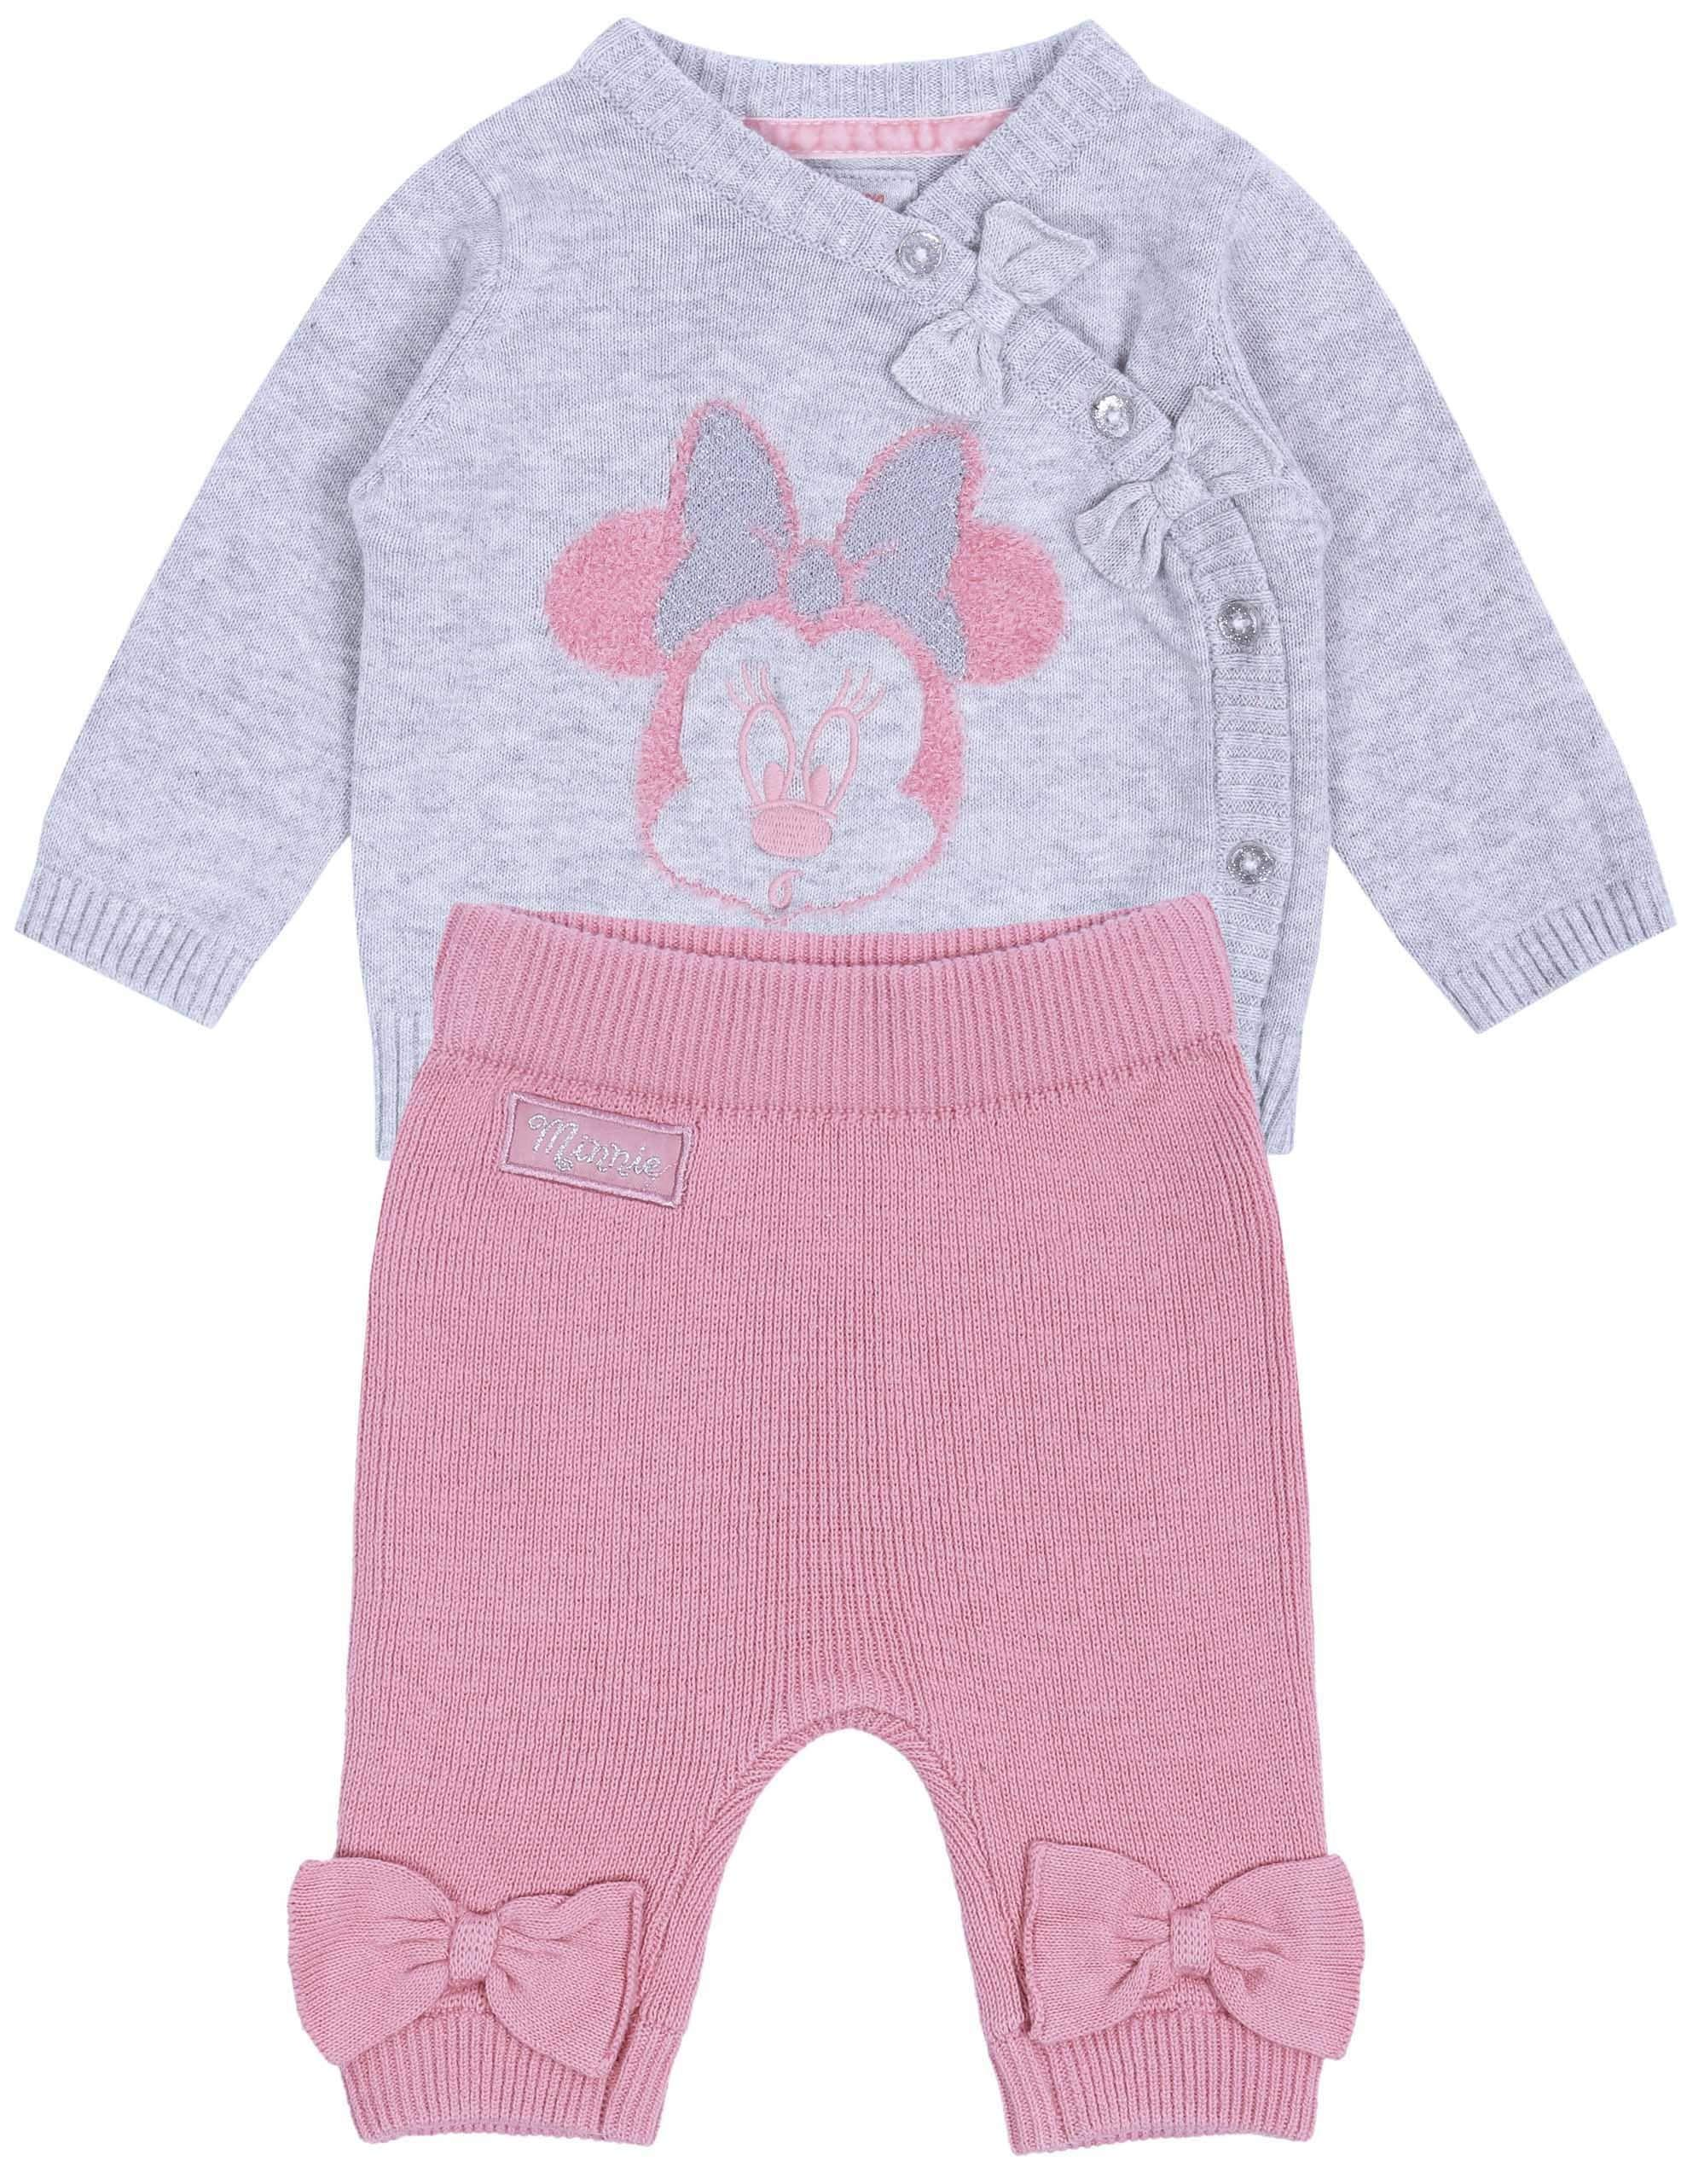 Suéter de bebé + Polainas, Color Gris-Rosa Minnie Disney 1